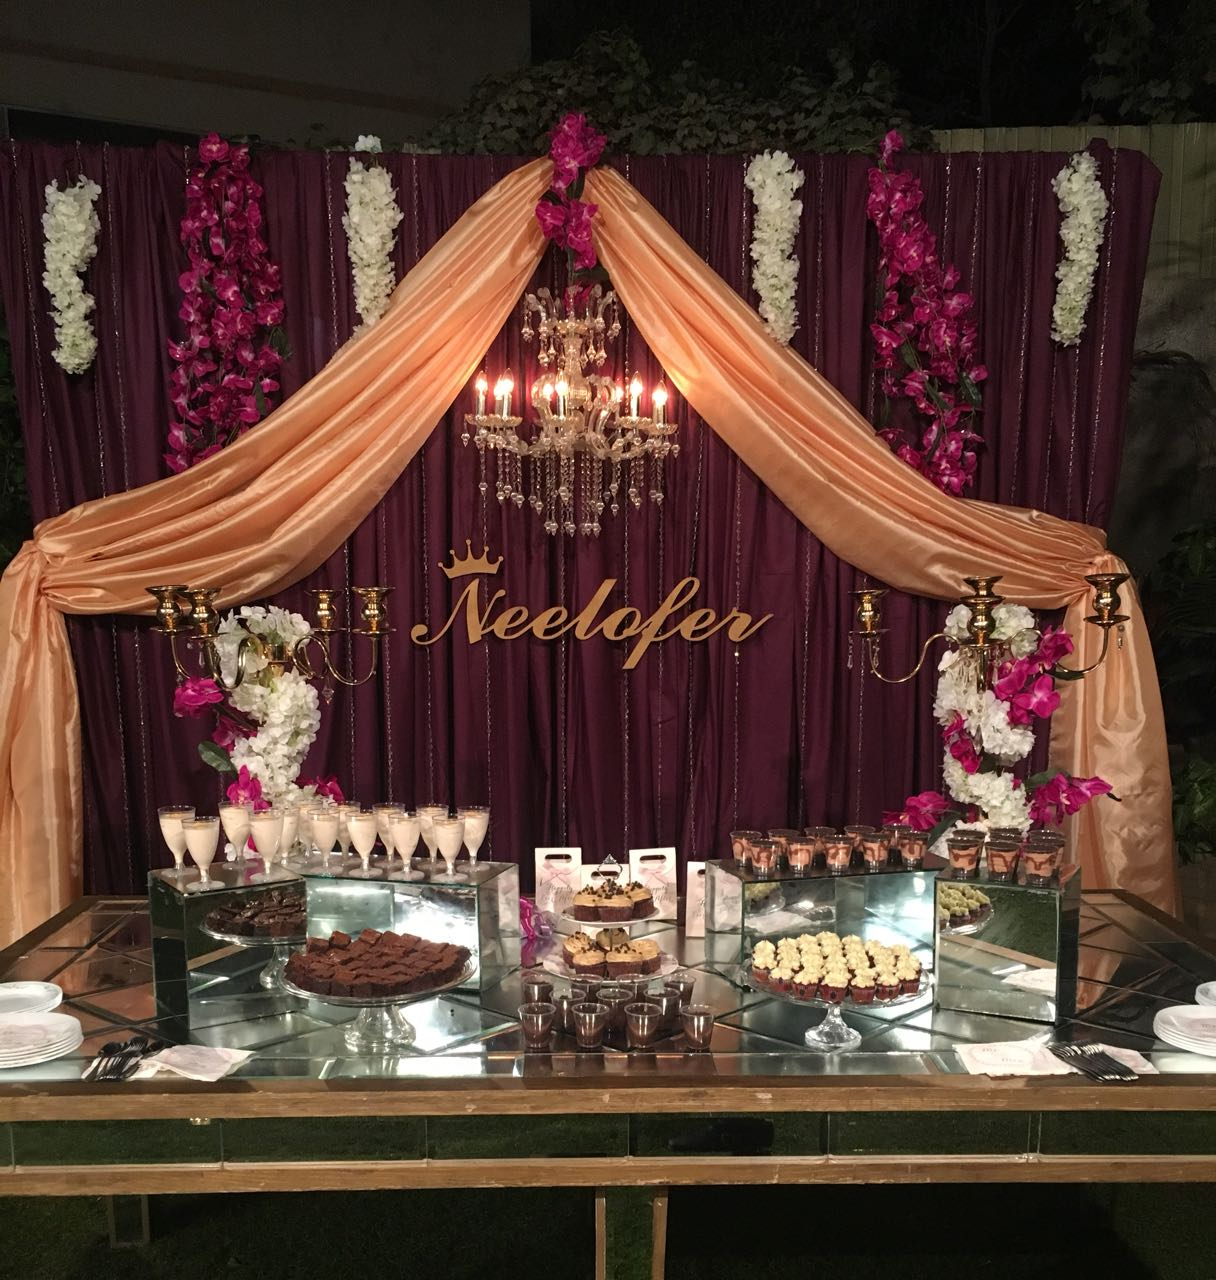 Dessert Table and decor 1